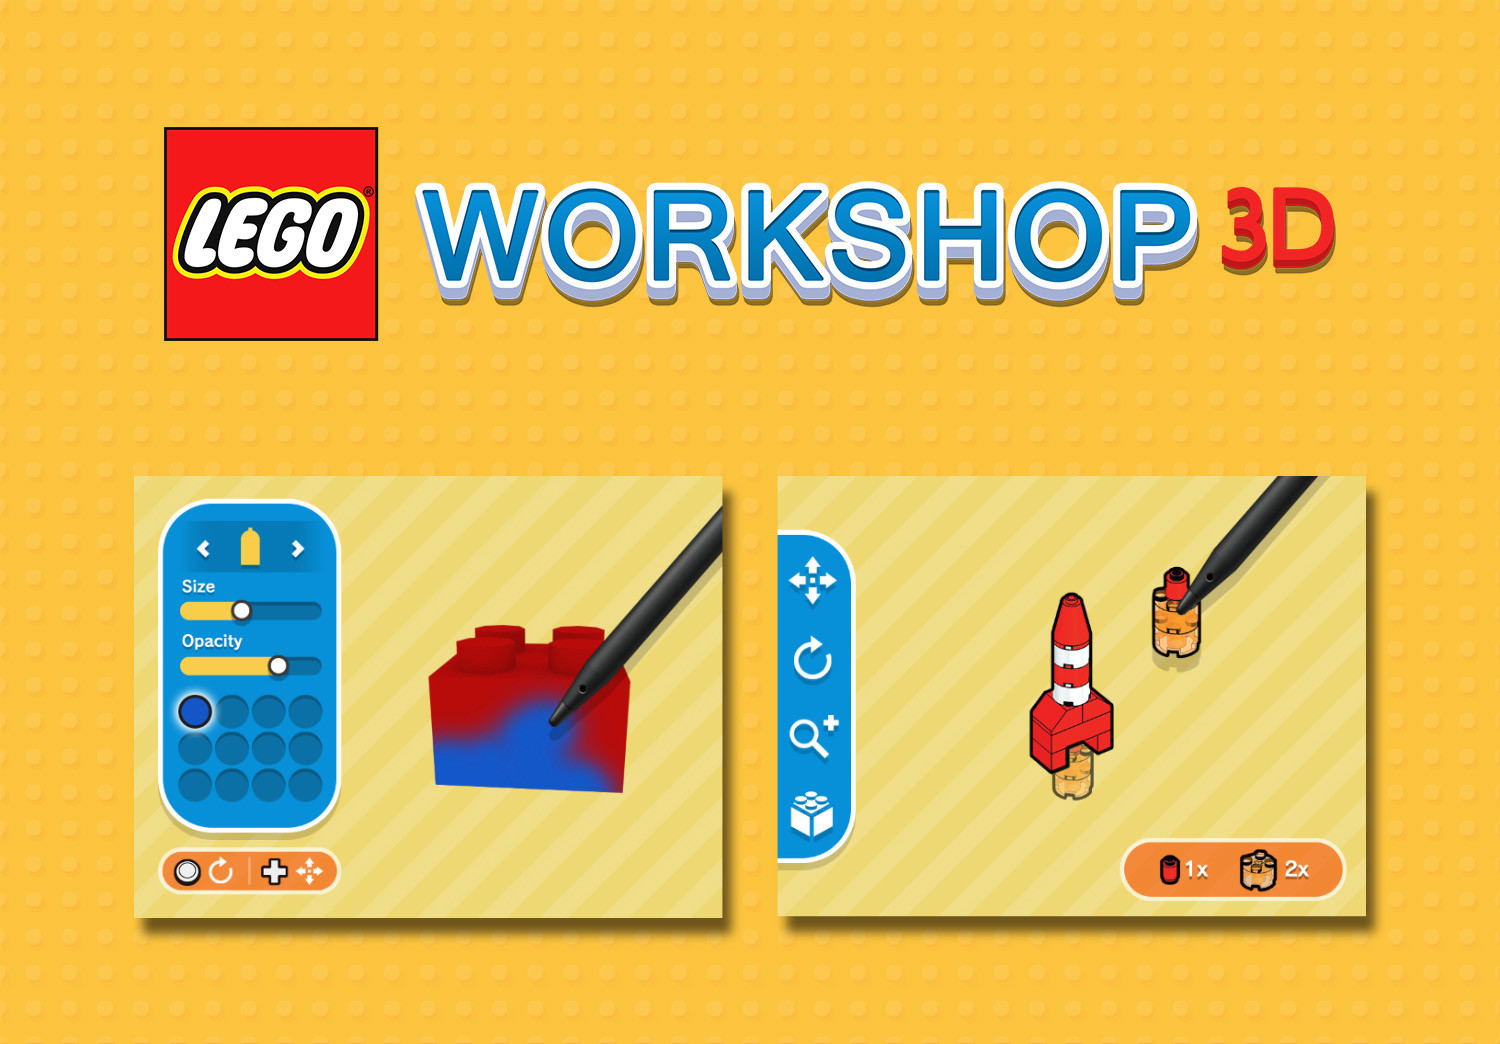 Lego Workshop 3D Gameplay & UI Mockup